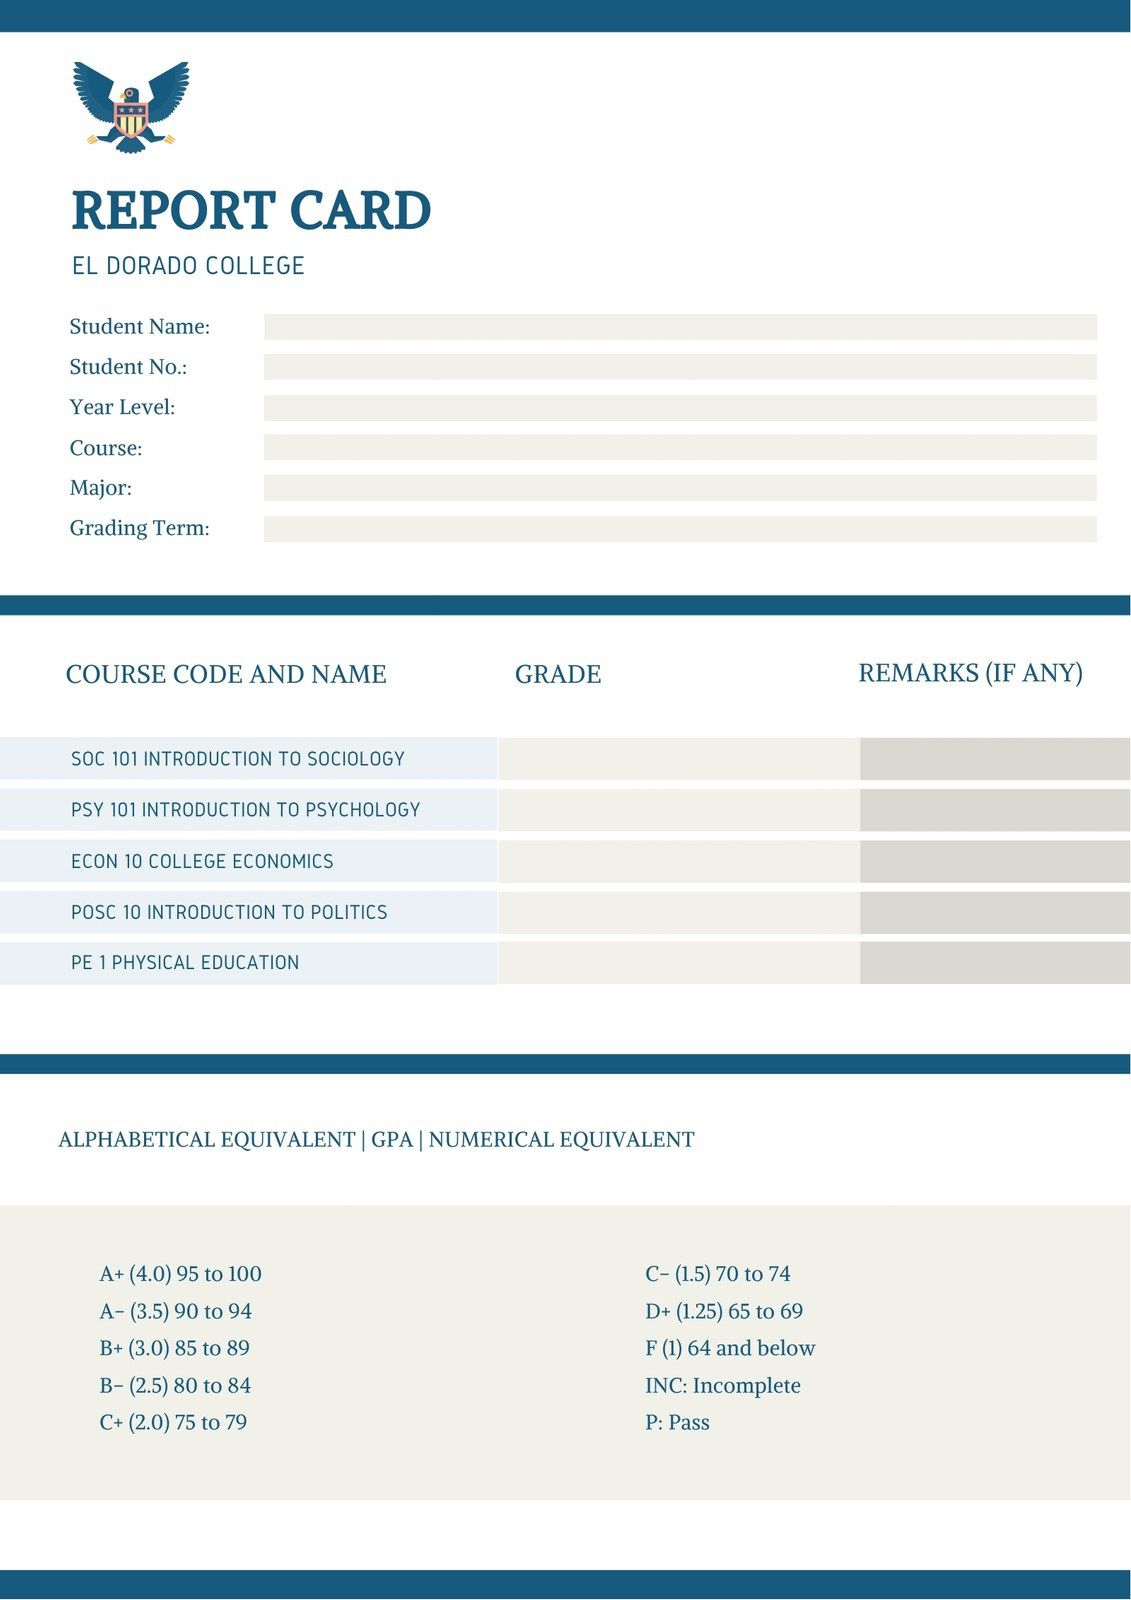 005 Exceptional College Report Card Template High Def  Free FakeFull